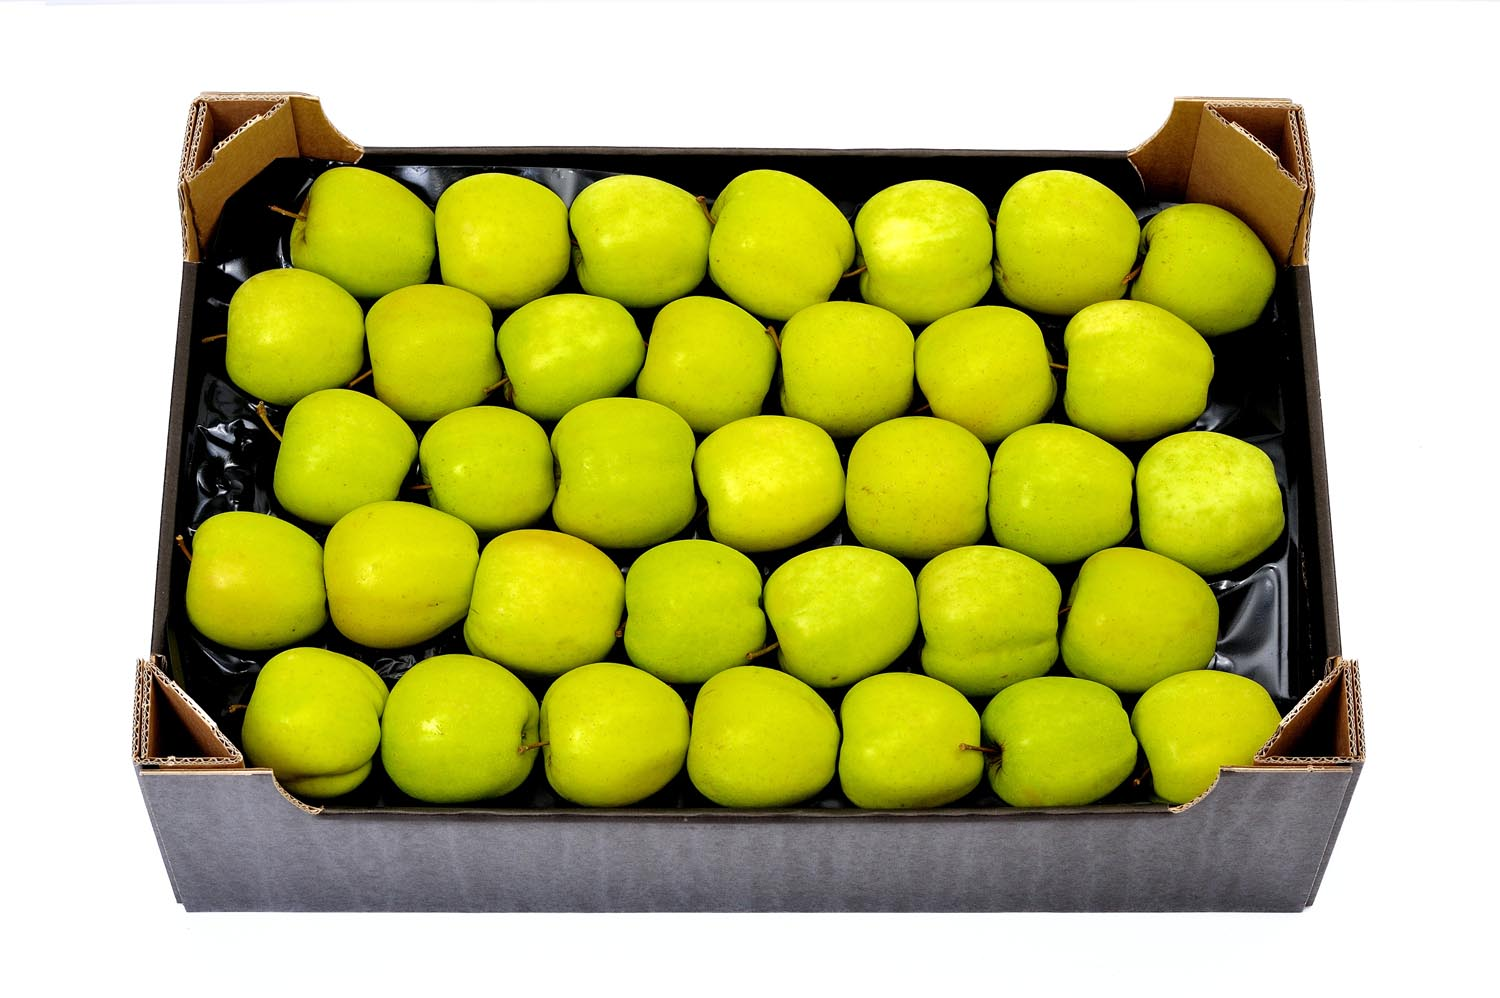 2 Golden Delicious 2 wytłoczka 12 kg